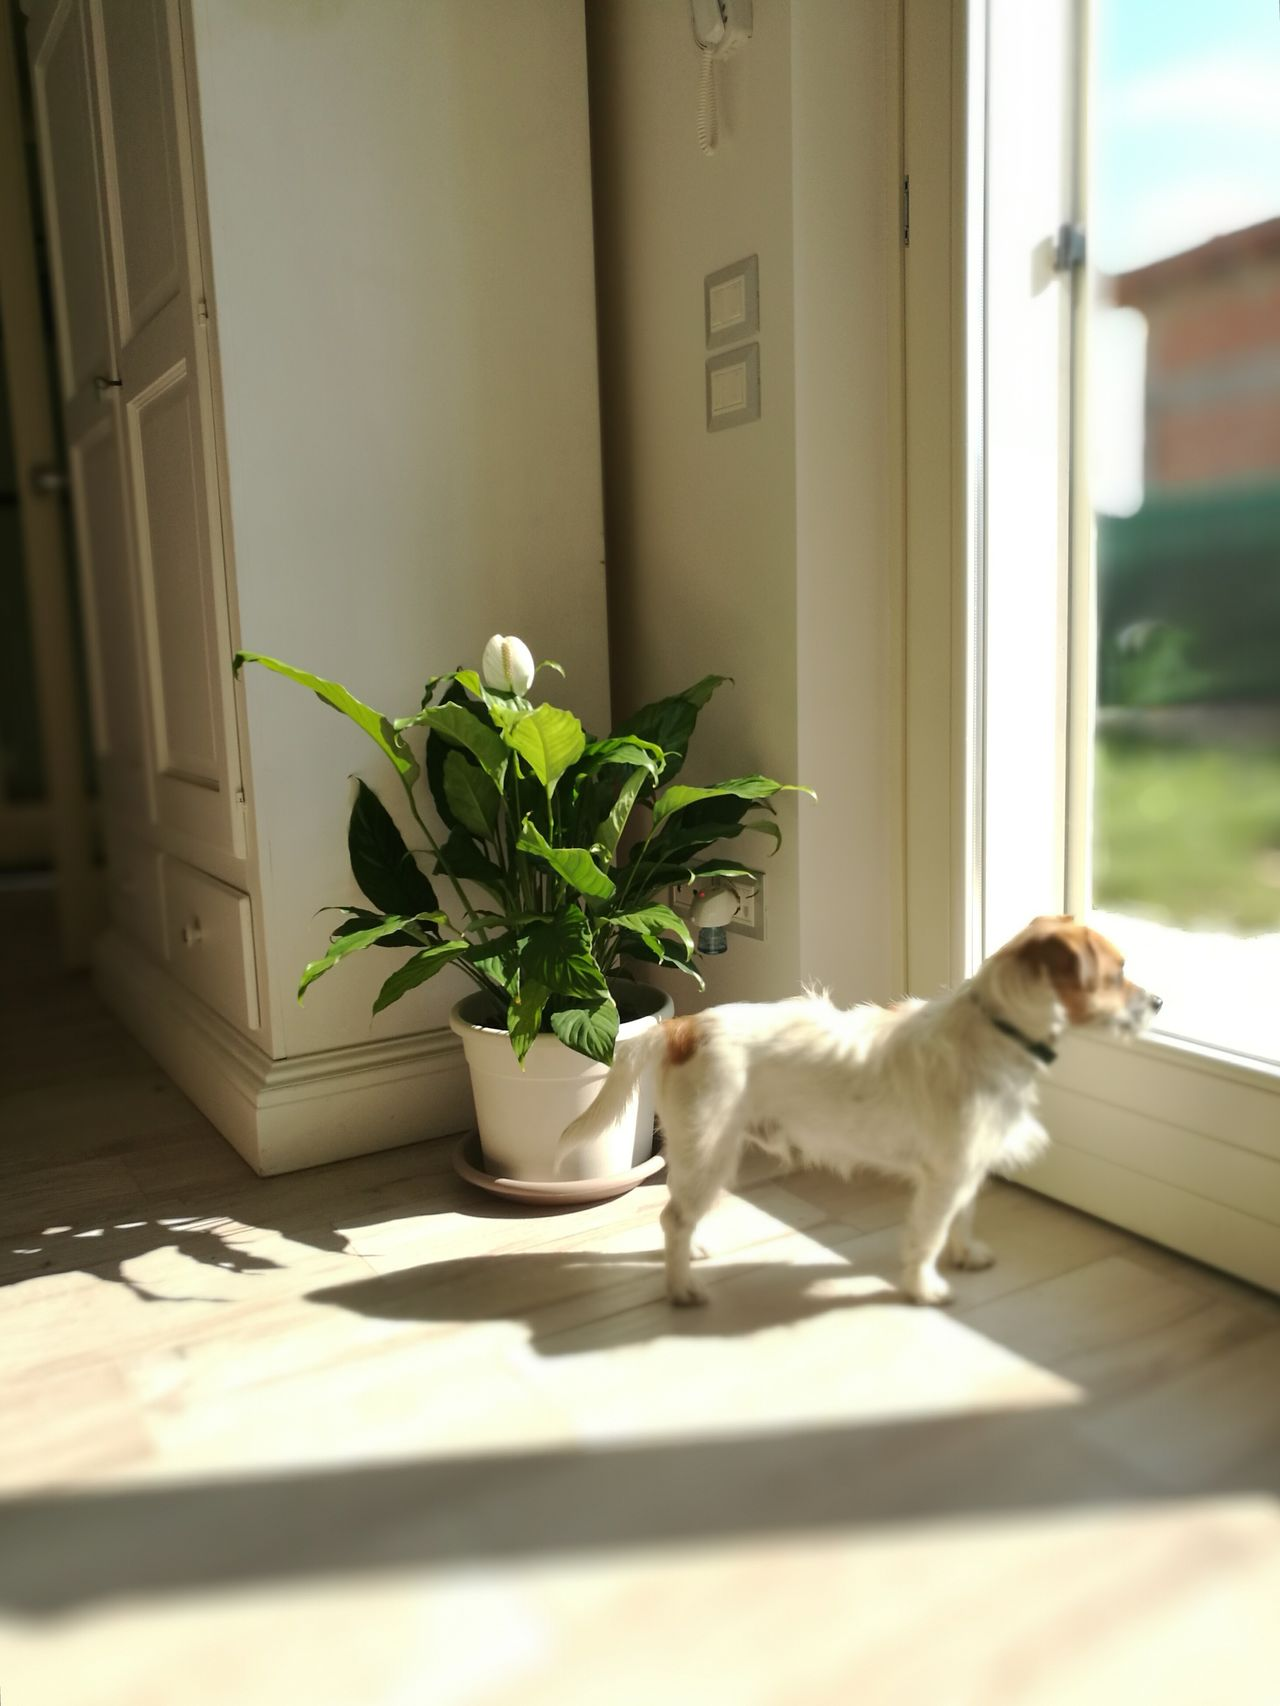 Dogs Of EyeEm House Plant Pensieroso Inside The House Thinking About You Thinking About.. Thinking Of You Waiting Waiting For You Waiting For Someone